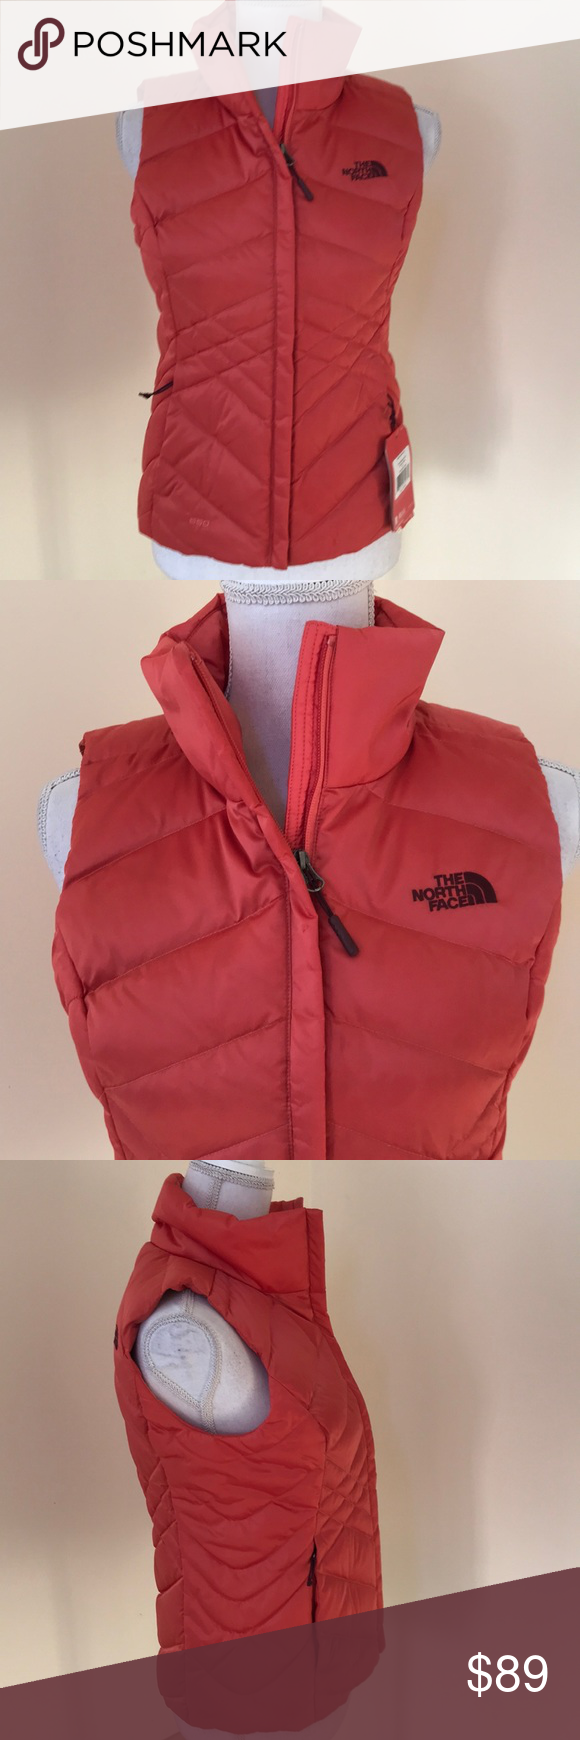 9bd80b5a9 NWT! The North Face XS coral Aconcagua vest New! The North Face size ...